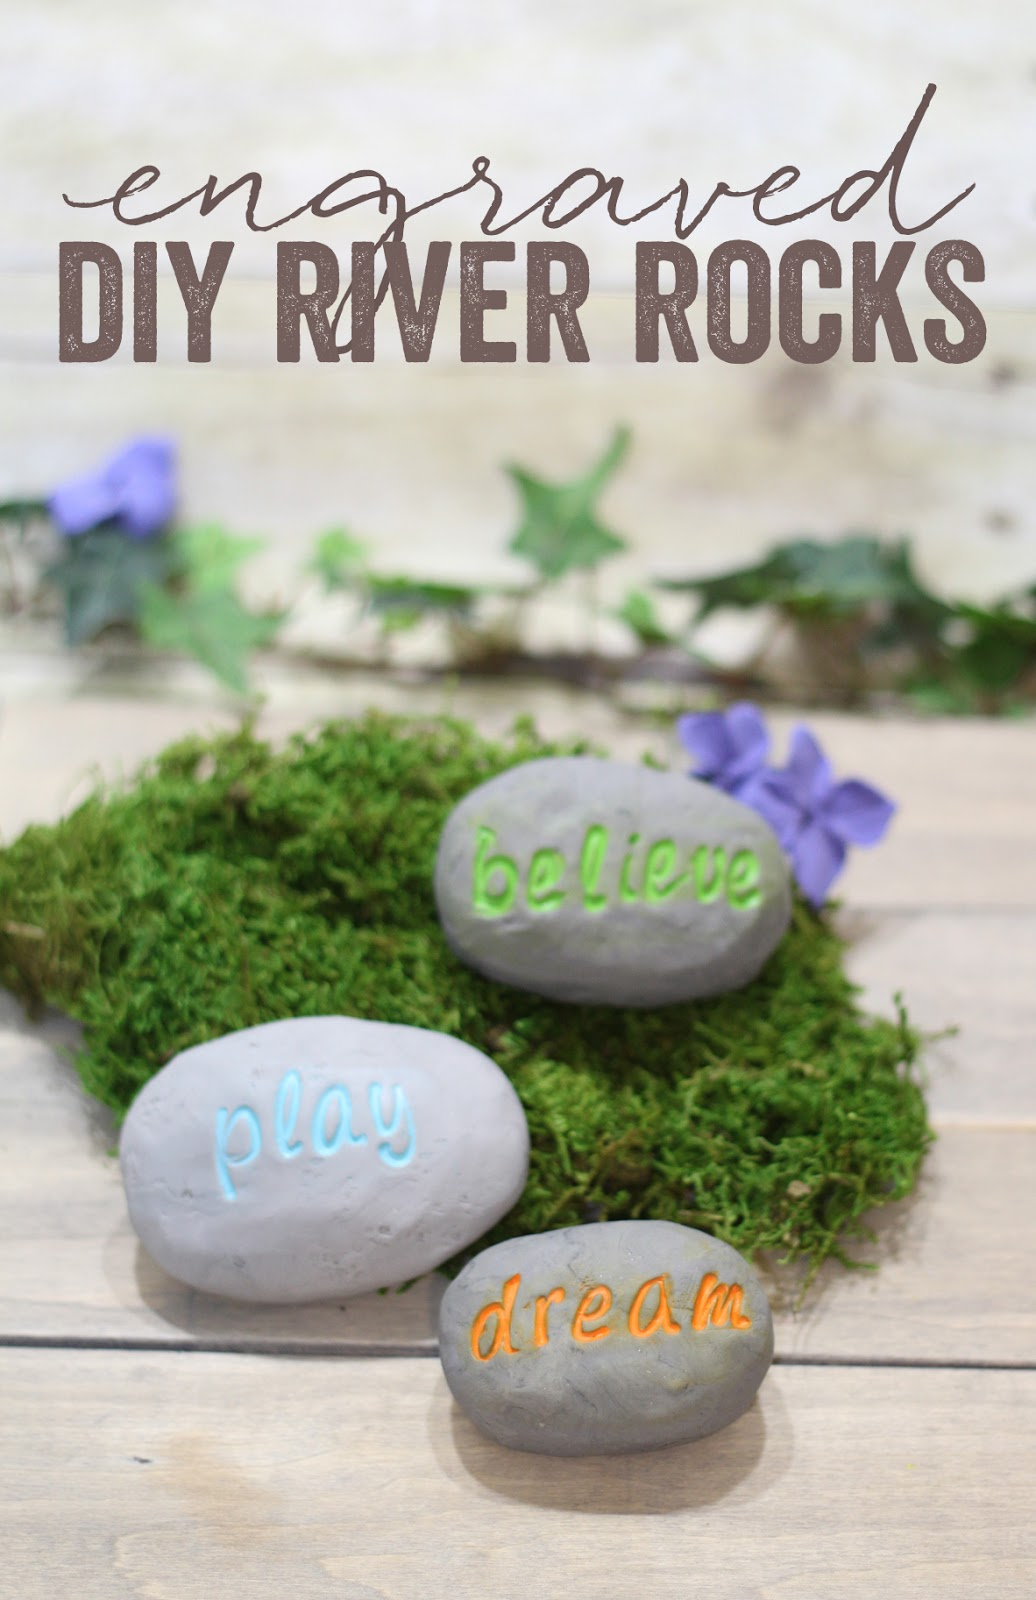 DIY engraved inspirational river rocks stones polymer clay